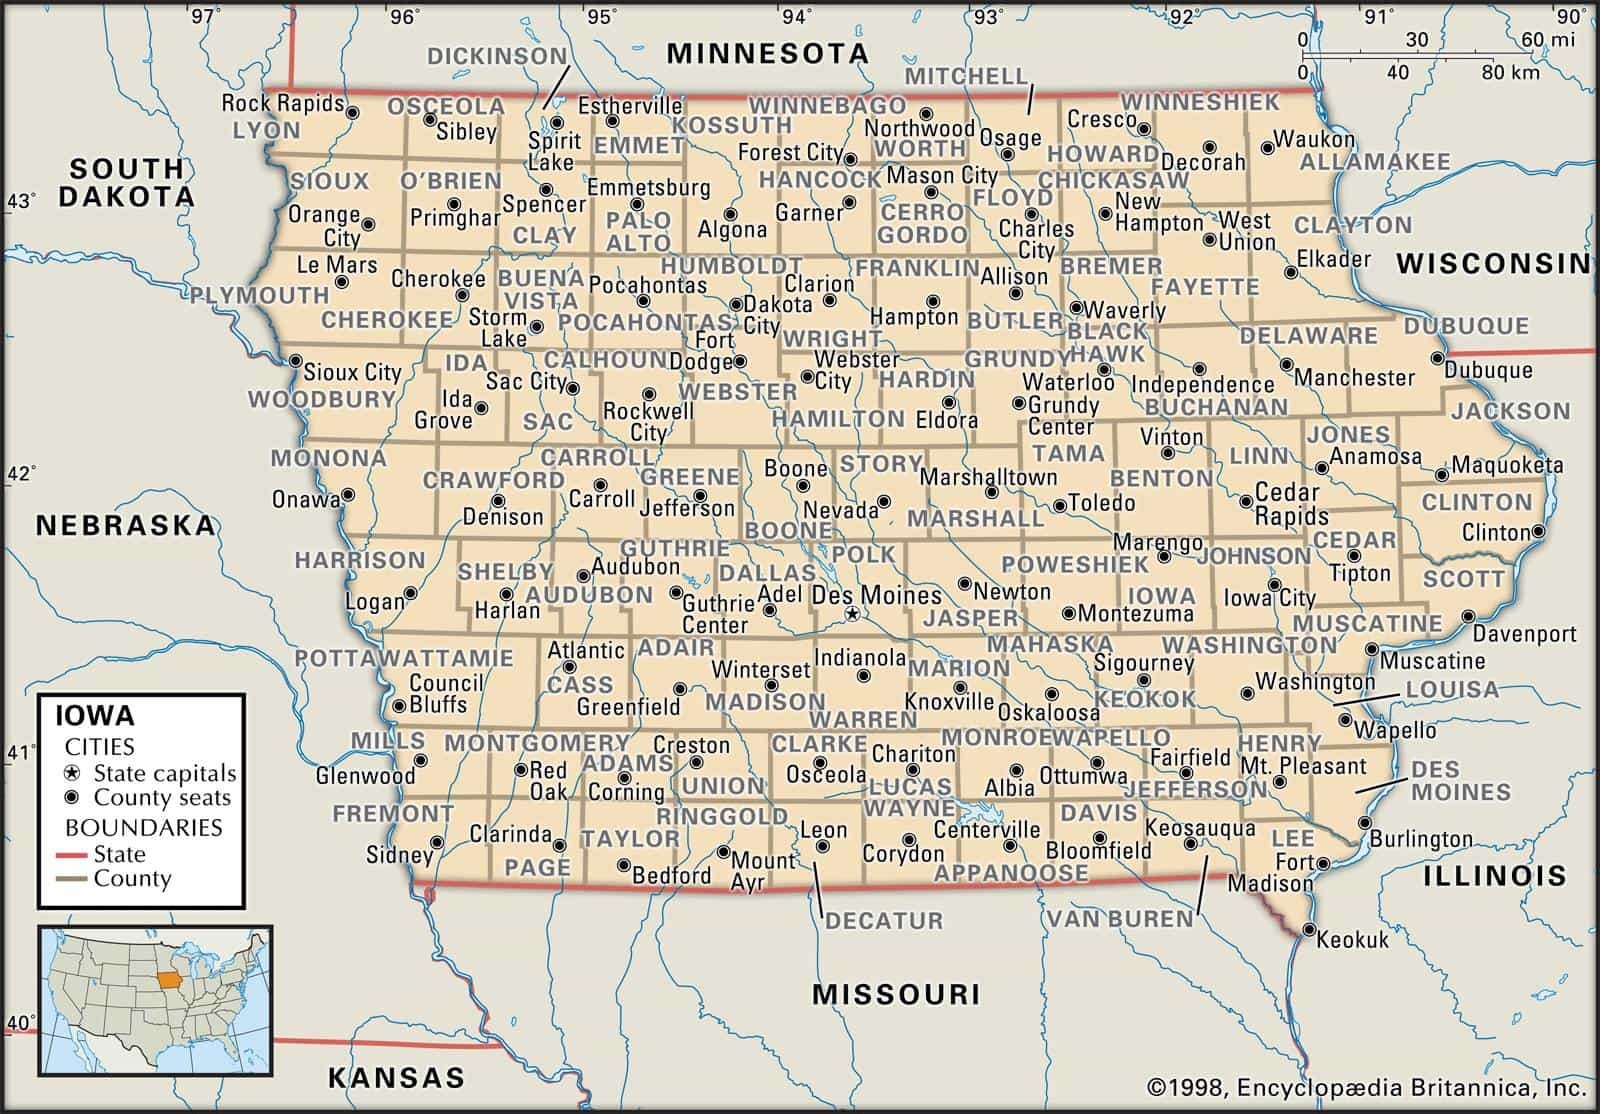 Historical Facts Of Iowa Counties